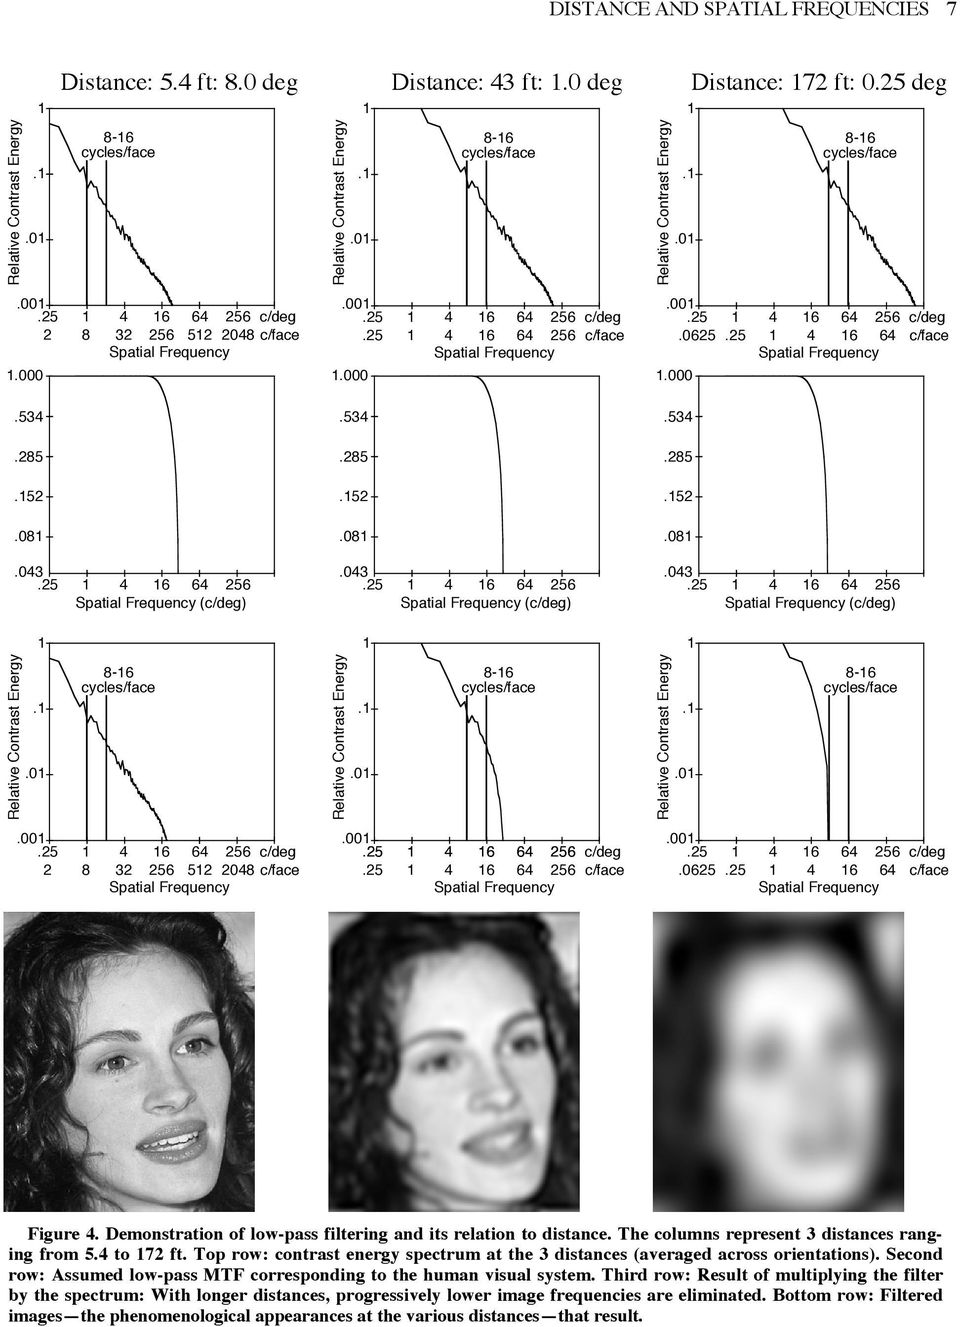 The faces appeared at one of two viewing distances, differing by a factor of 4 which, of course, means that the corresponding absolute spatial frequencies also differed by a factor of 4. Hayes at al.